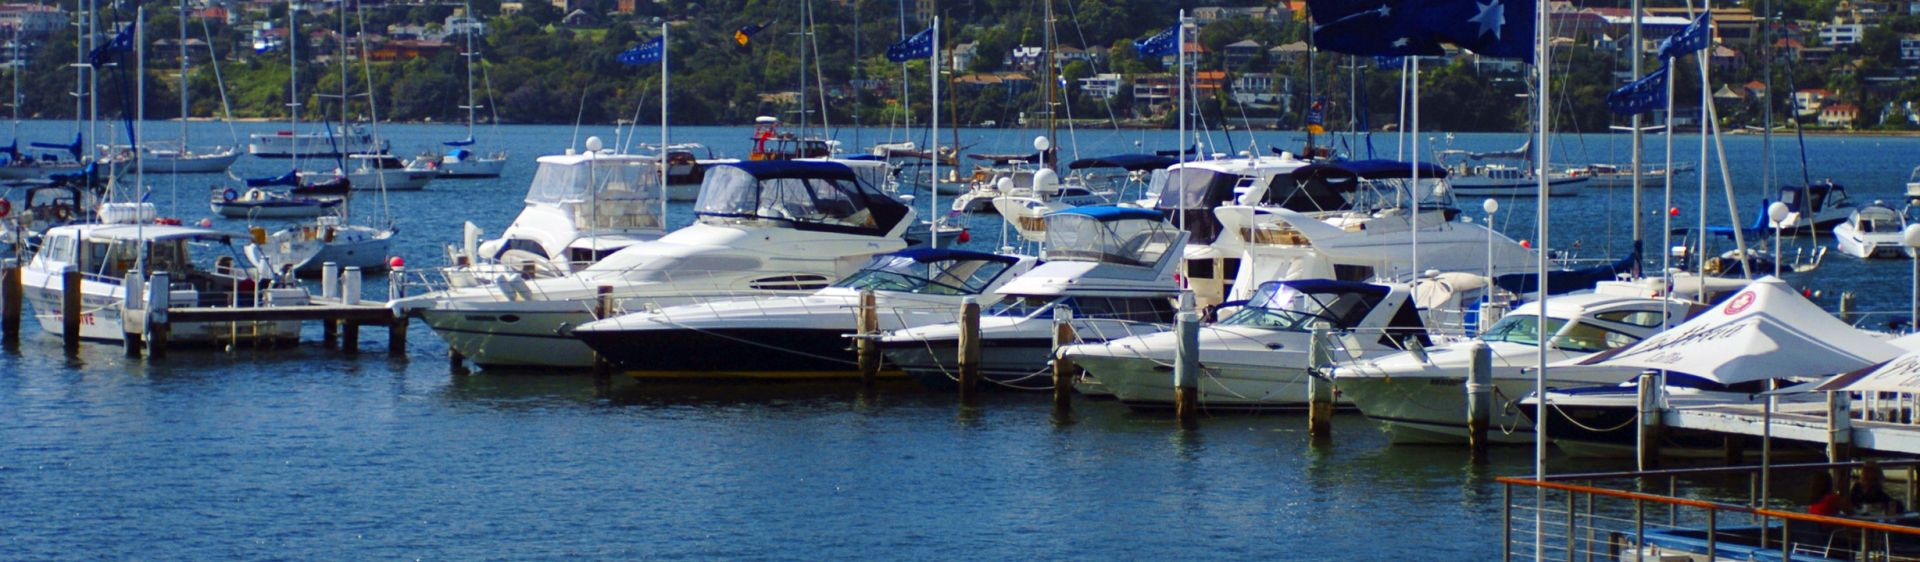 Boats moored at Double Bay Marina, Sydney